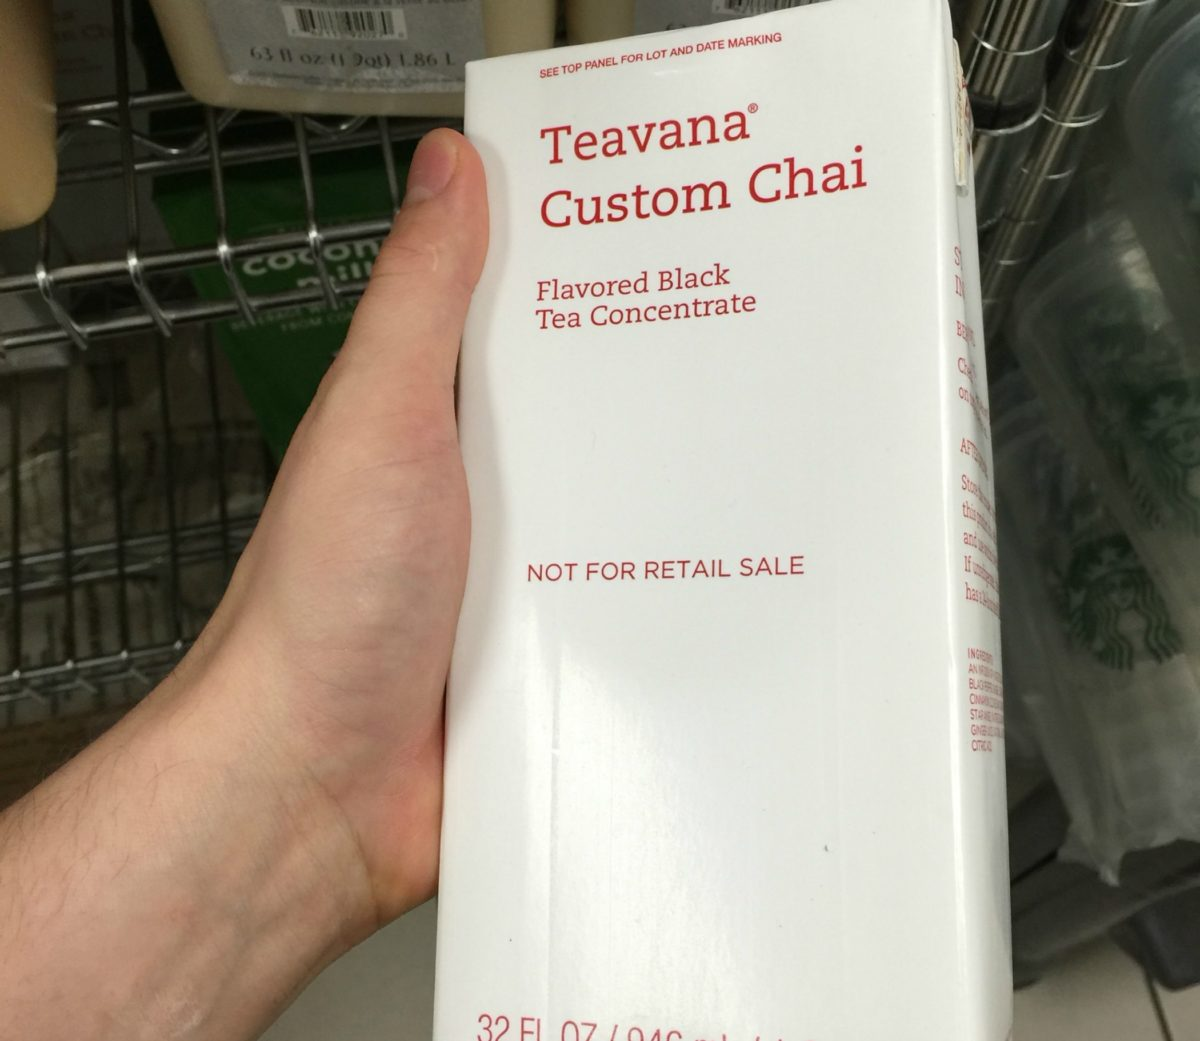 The Teavana Custom Chai Tea Test.